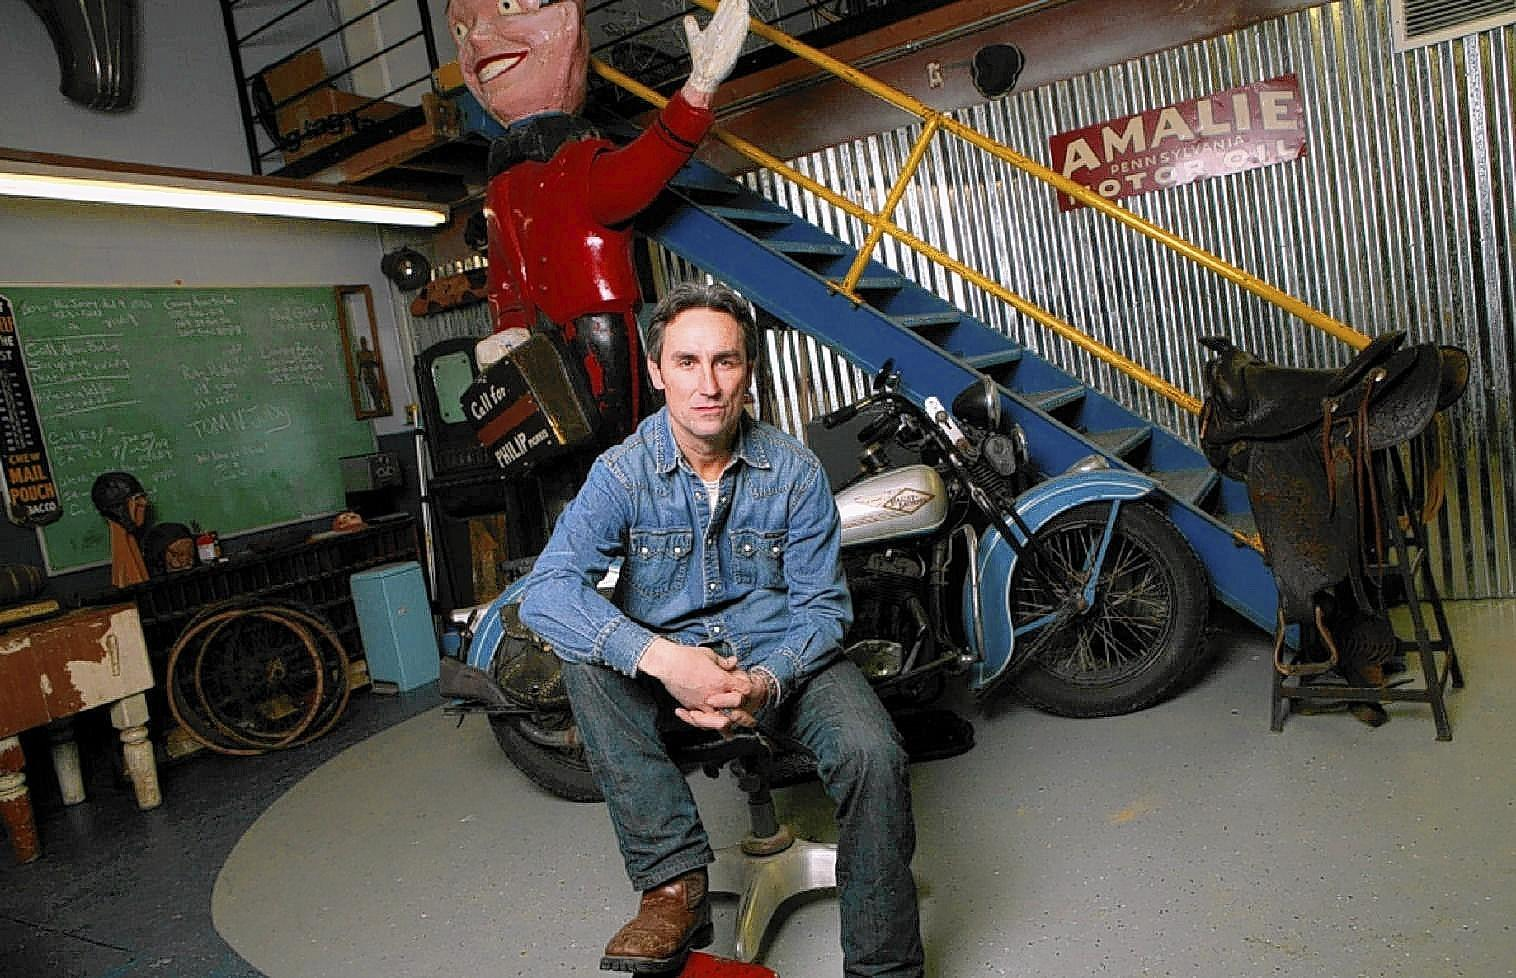 """Mike Wolfe of """"American Pickers"""" fame poses inside his original antique shop in LeClaire, Iowa. (Mike Wolfe photo)"""